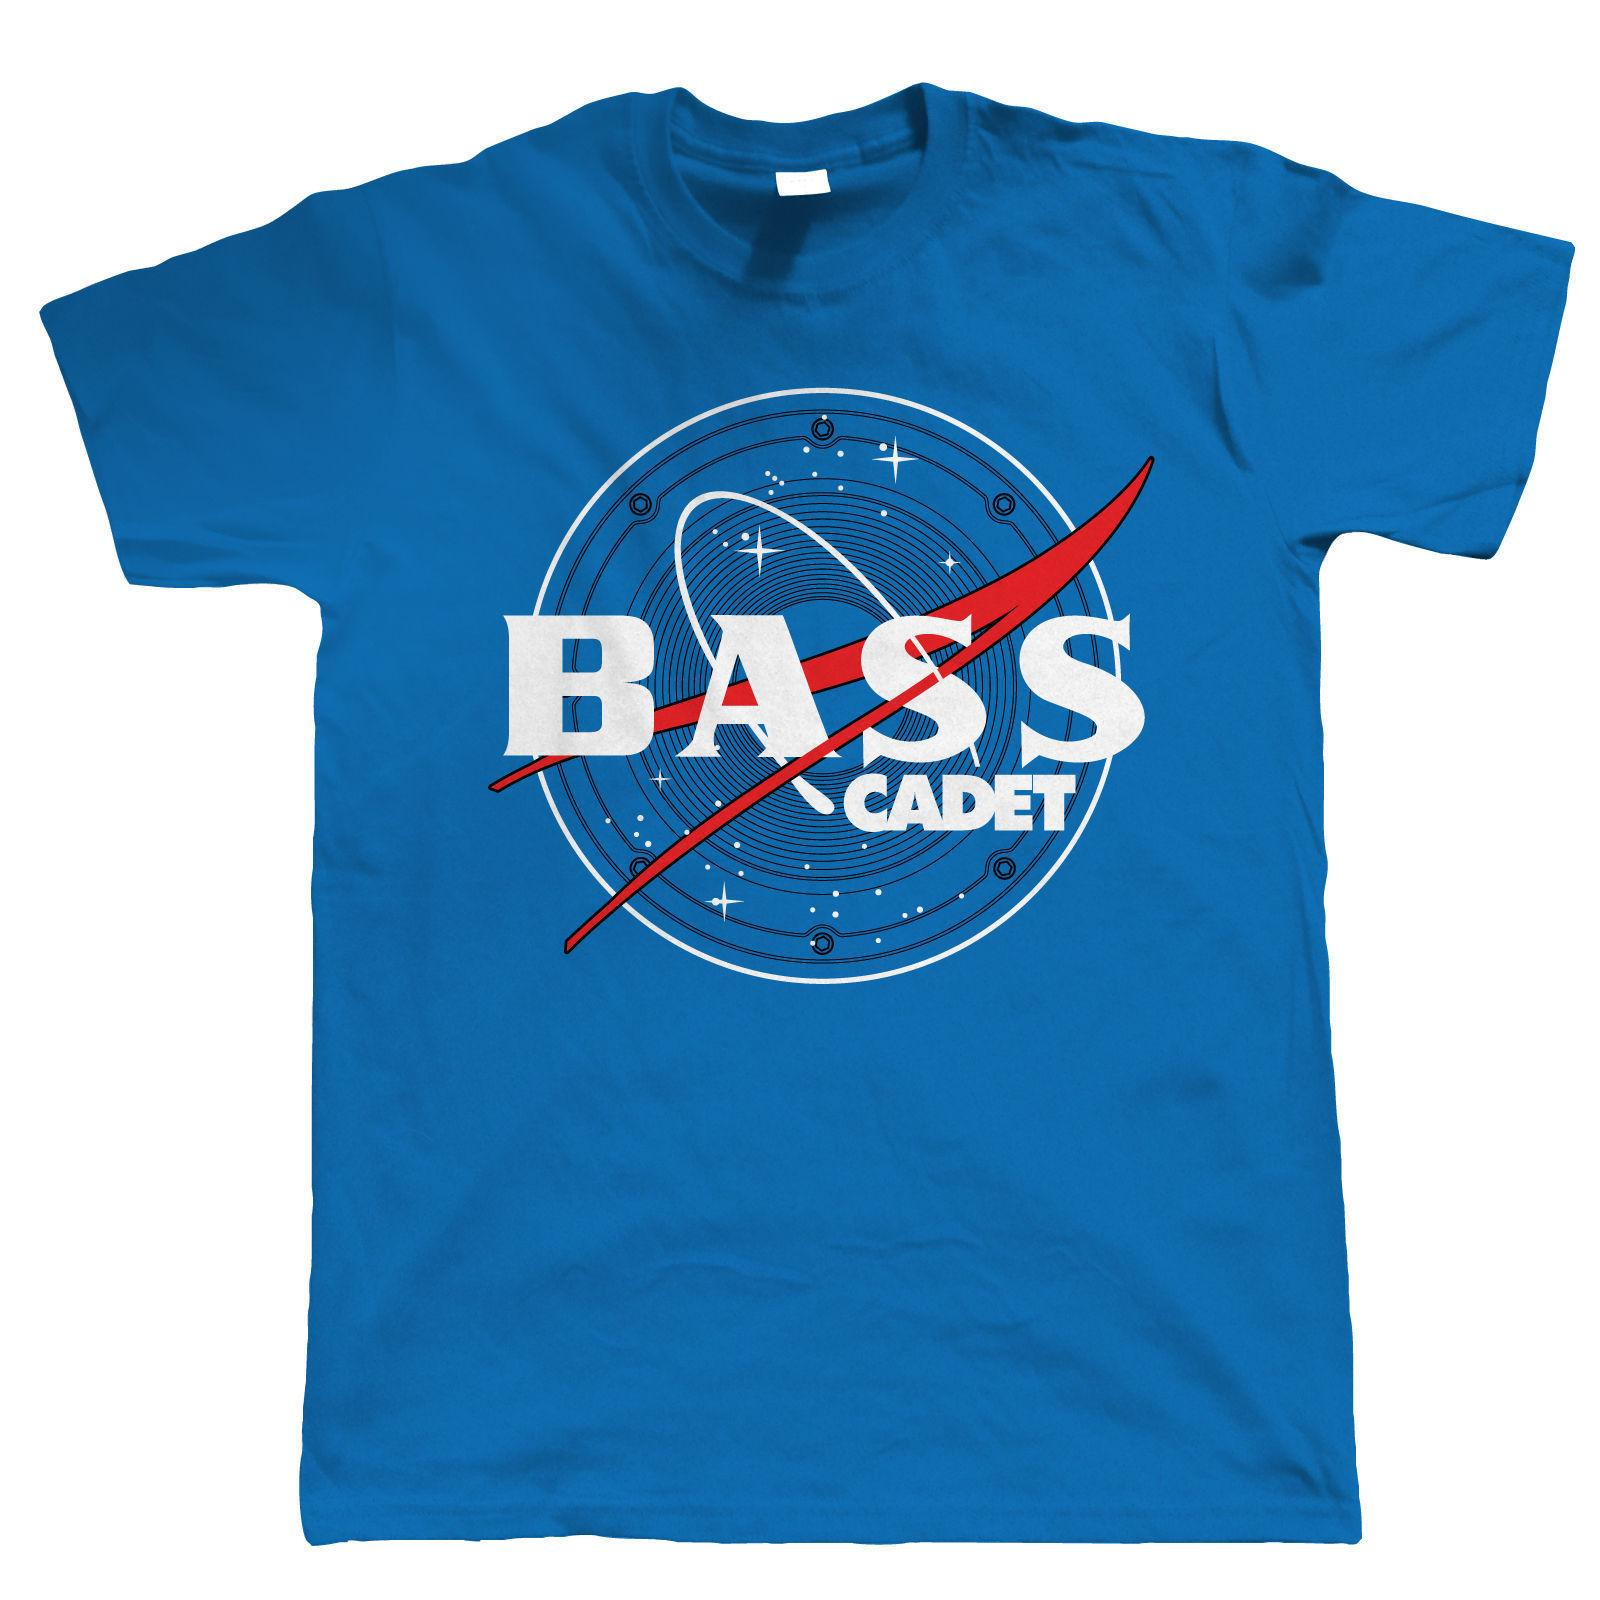 2304fbba Bass Cadet DJ Rave T Shirt Cool Festival Tshirt Funny Unisex Casual Tshirt  Top Buy Tees Funniest T Shirt From Teeslocker, $12.96| DHgate.Com